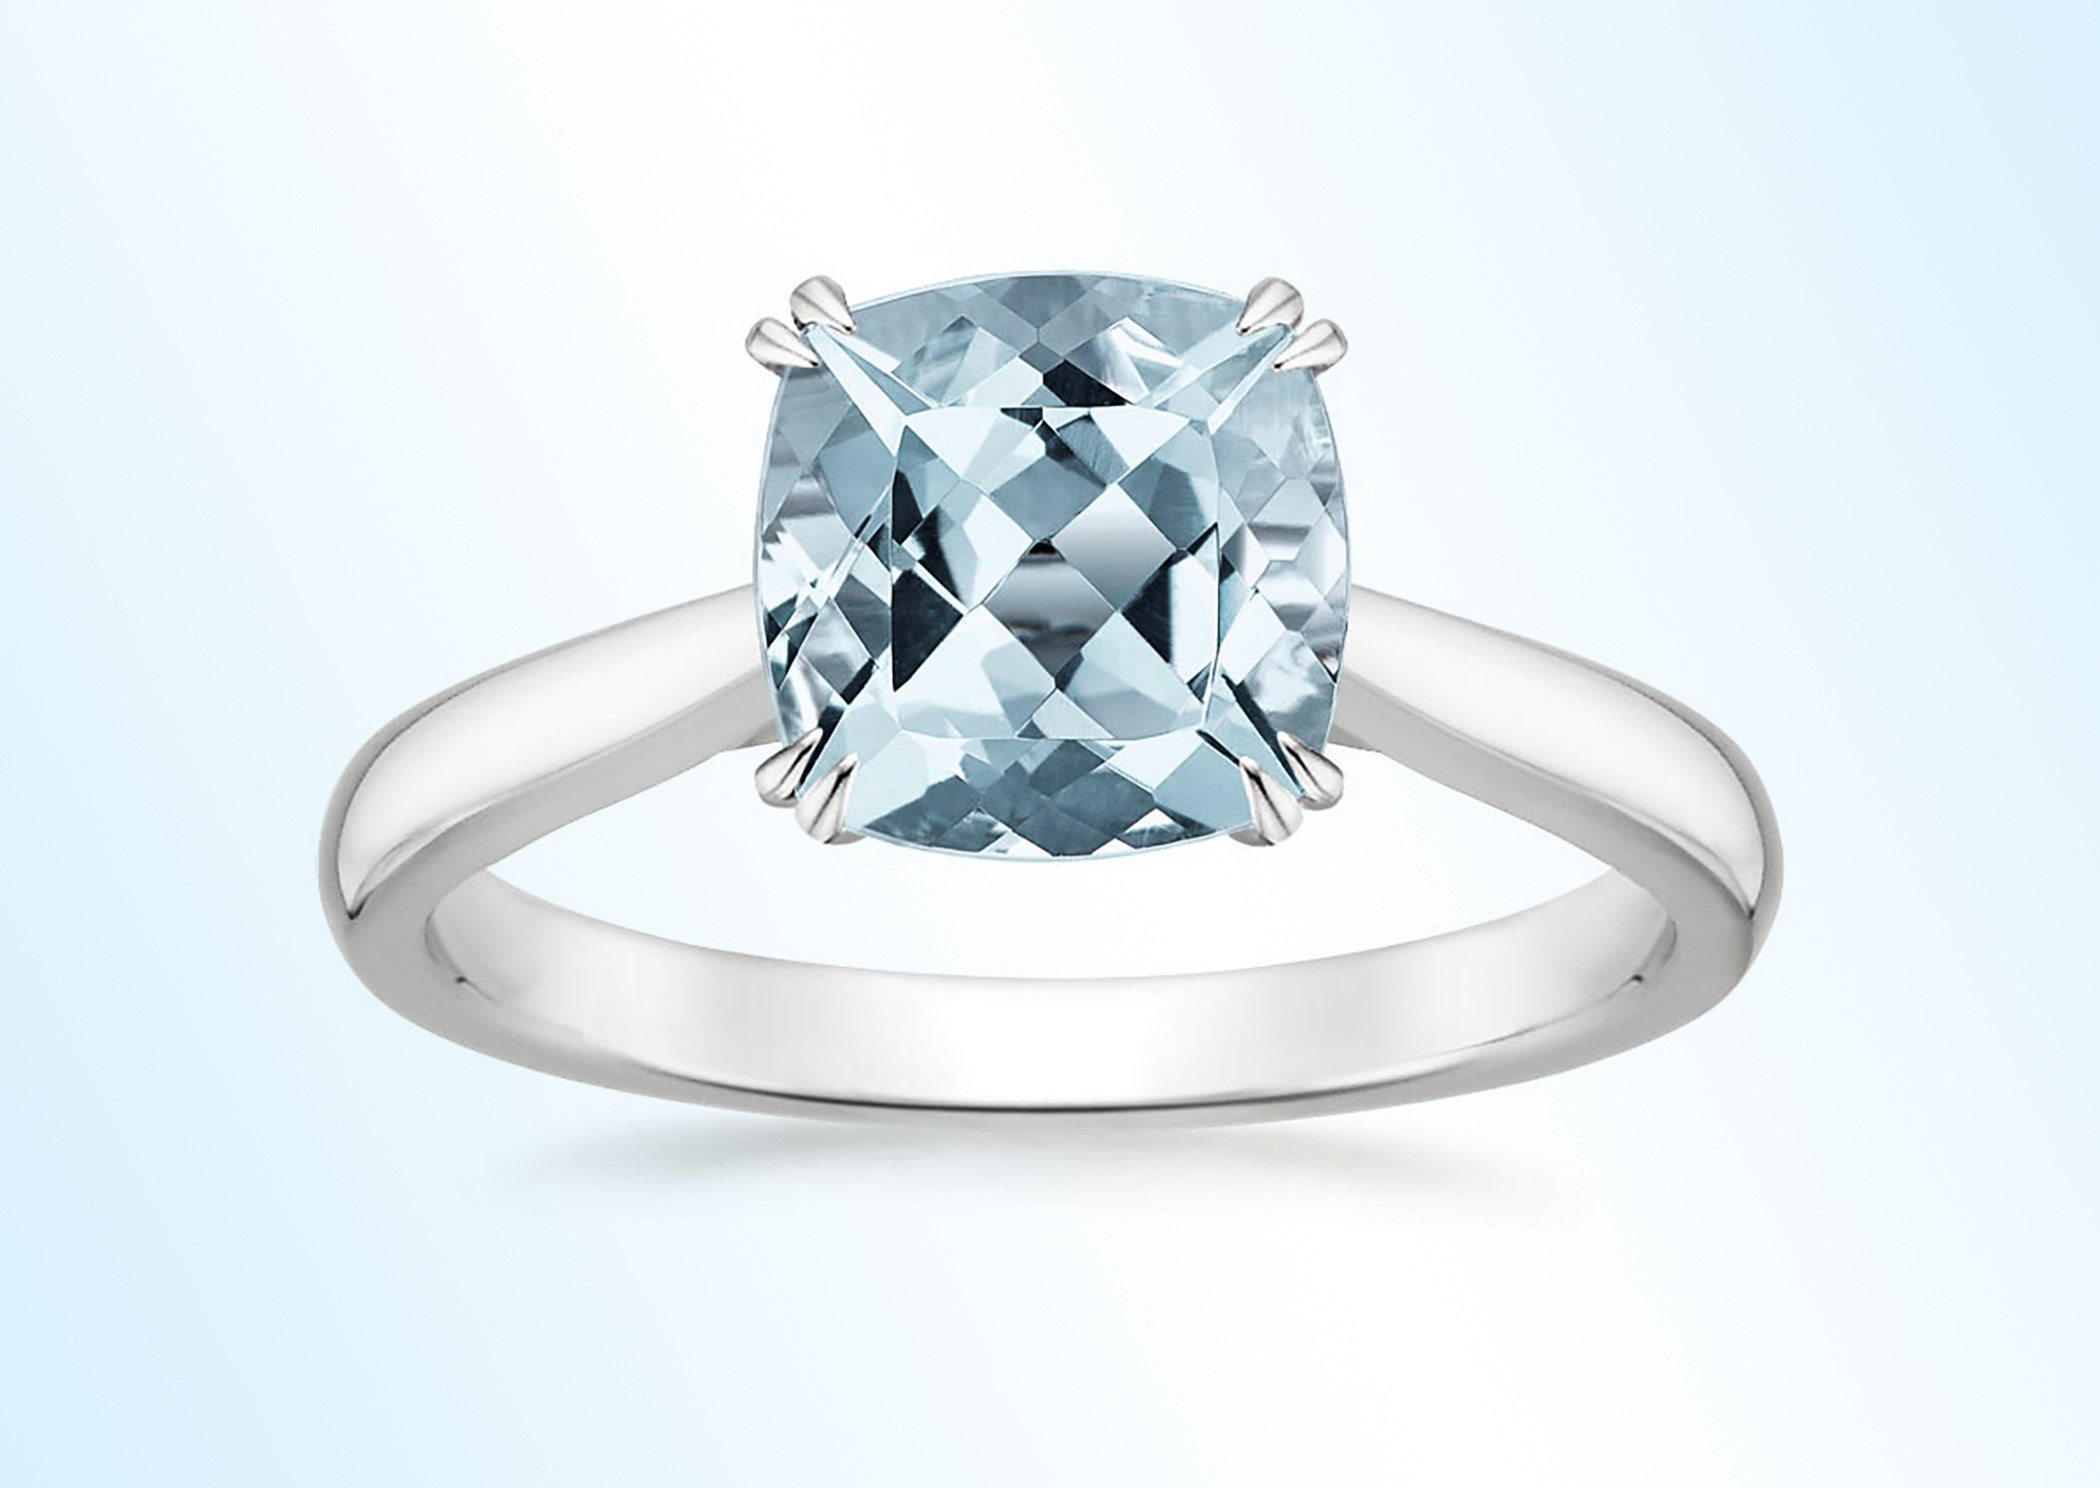 Aquamarine Audrey Ring from Brilliant Earth